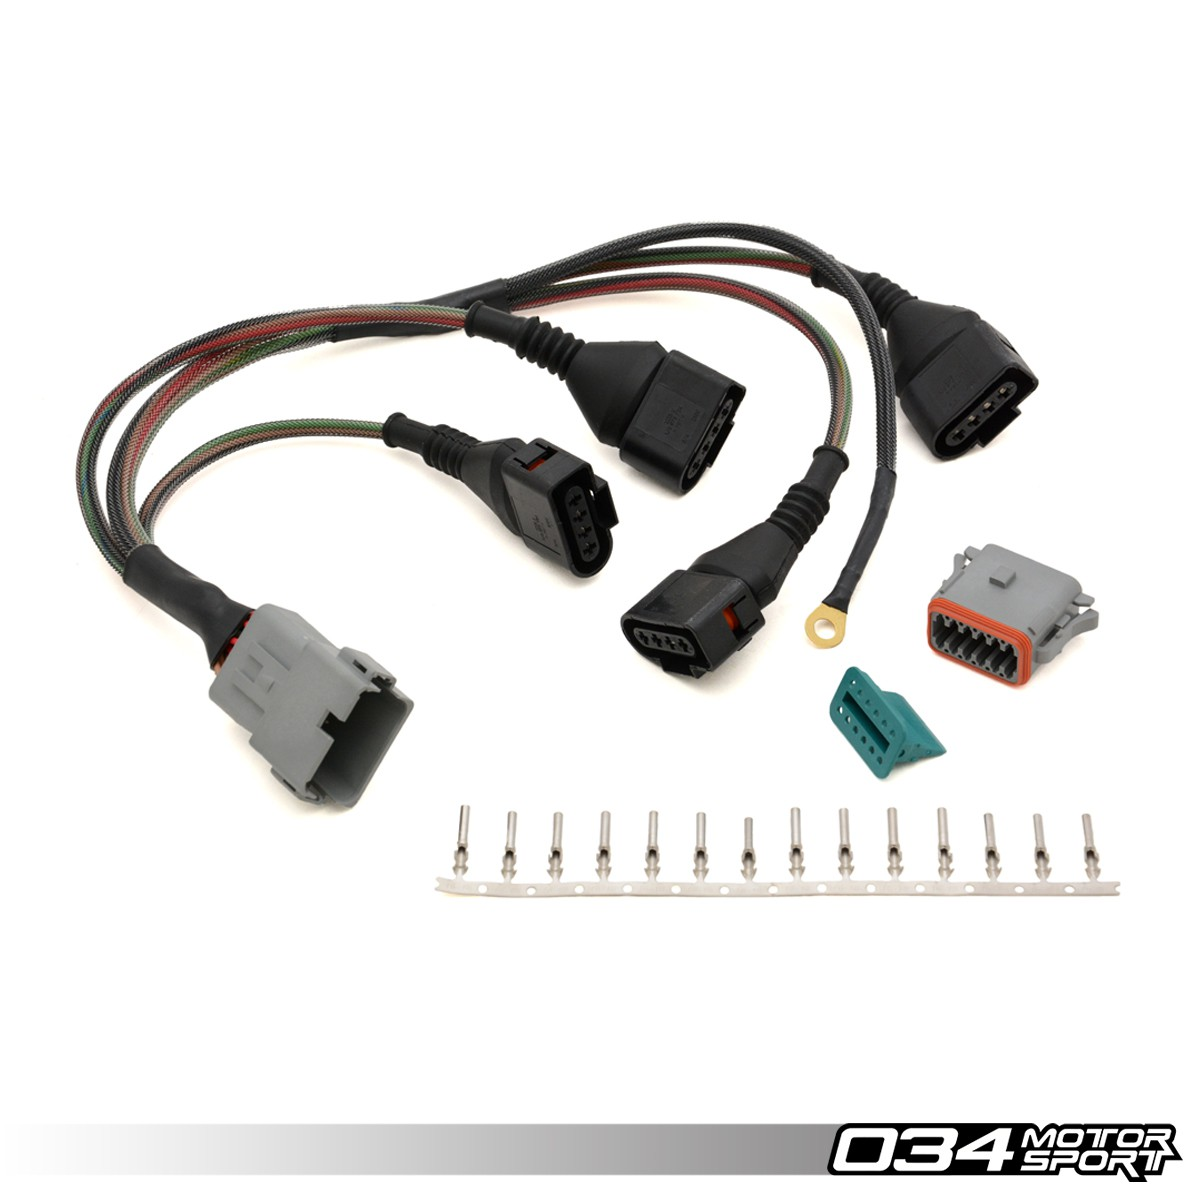 repair update harness audi volkswagen 18t with 4 wire coils 034motorsport 034 701 0004 2 repair update harness, audi volkswagen 1 8t with 4 wire coils  at soozxer.org